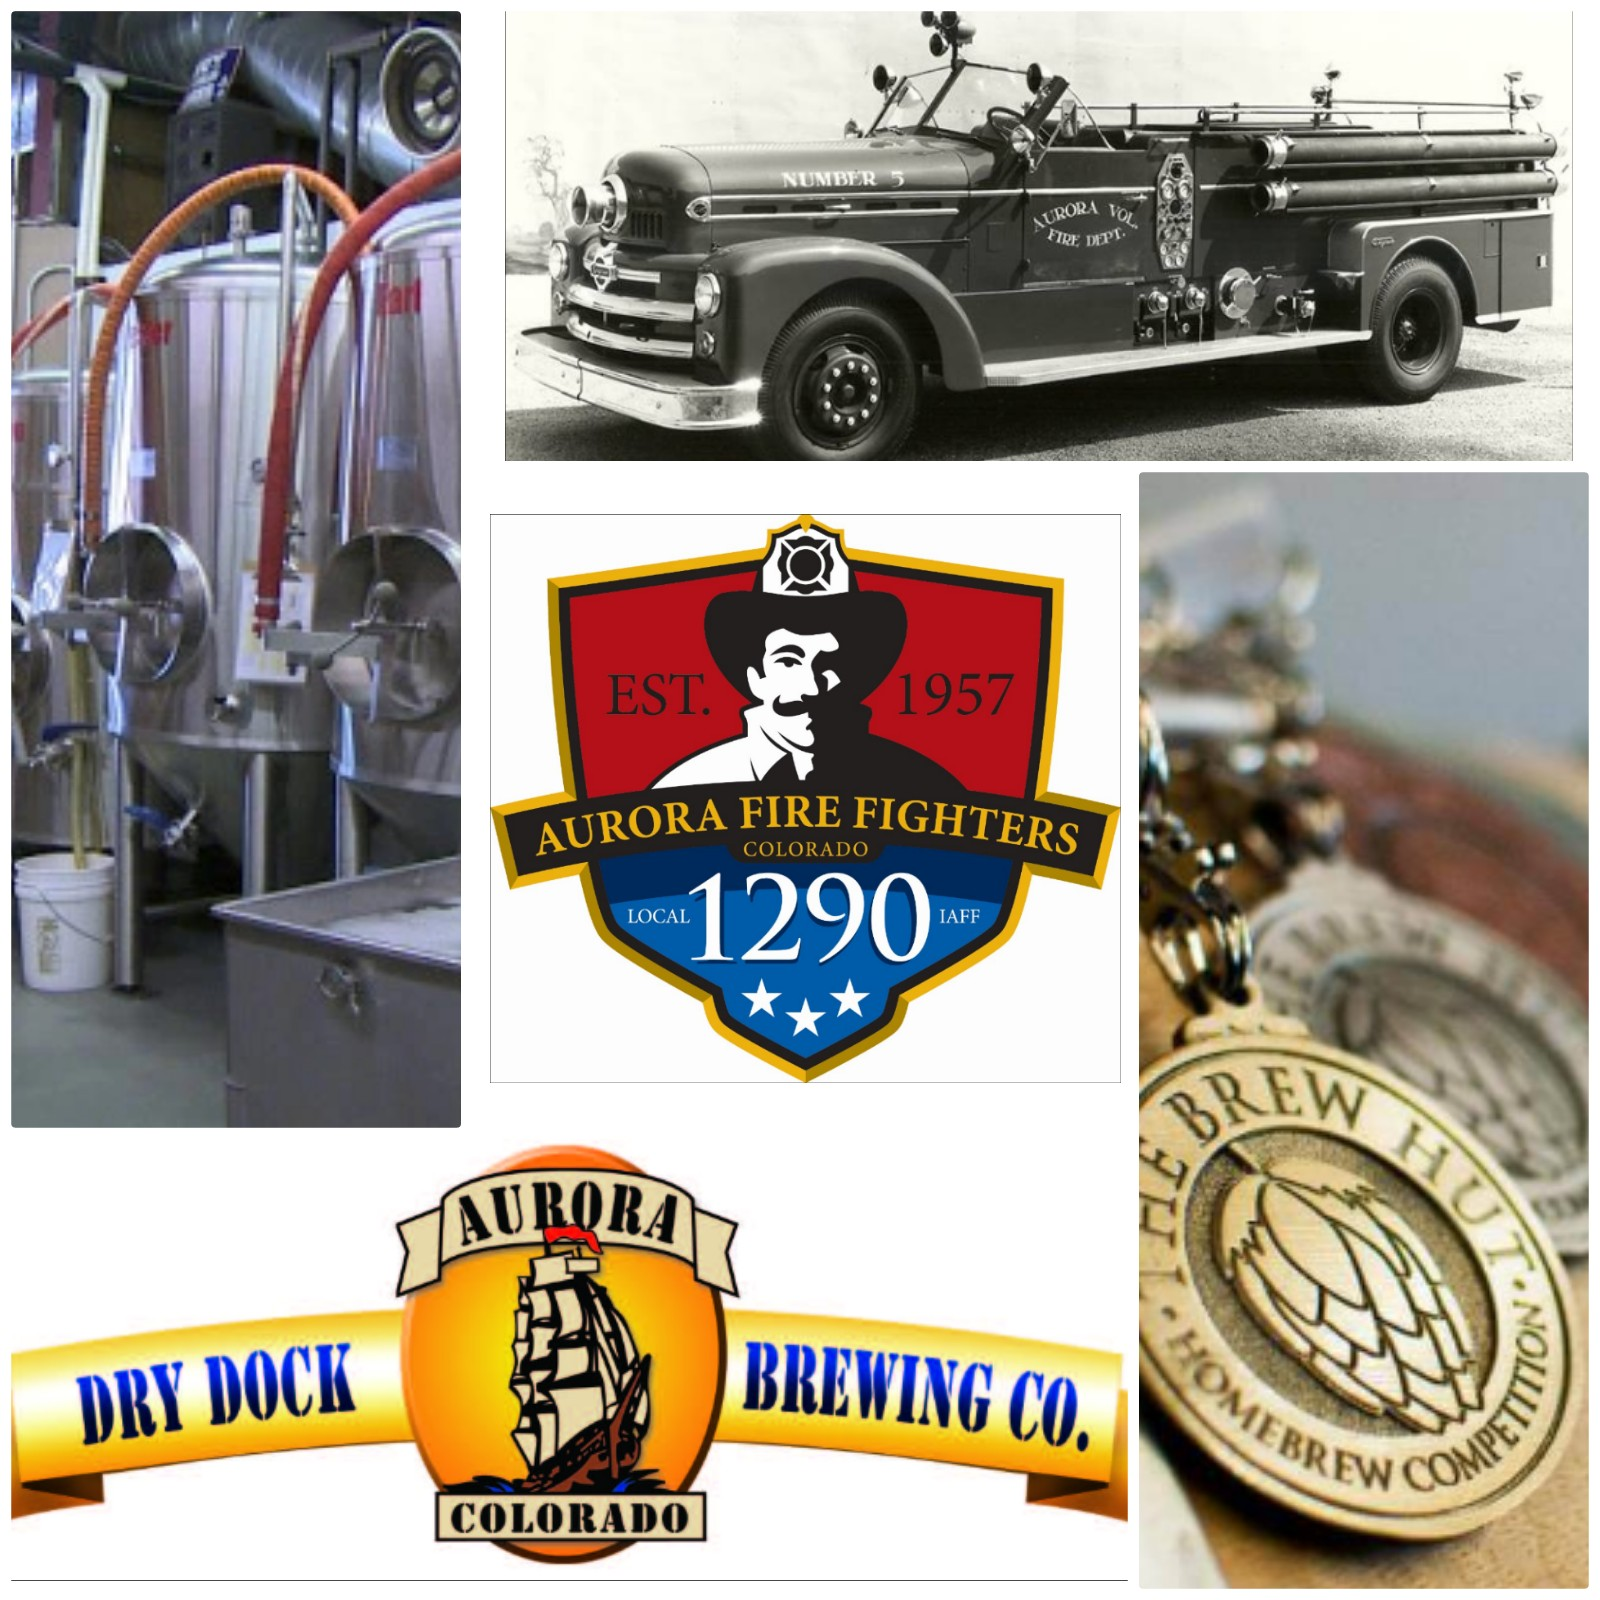 Big John Ale 2018 - Exciting News! - Aurora Firefighters